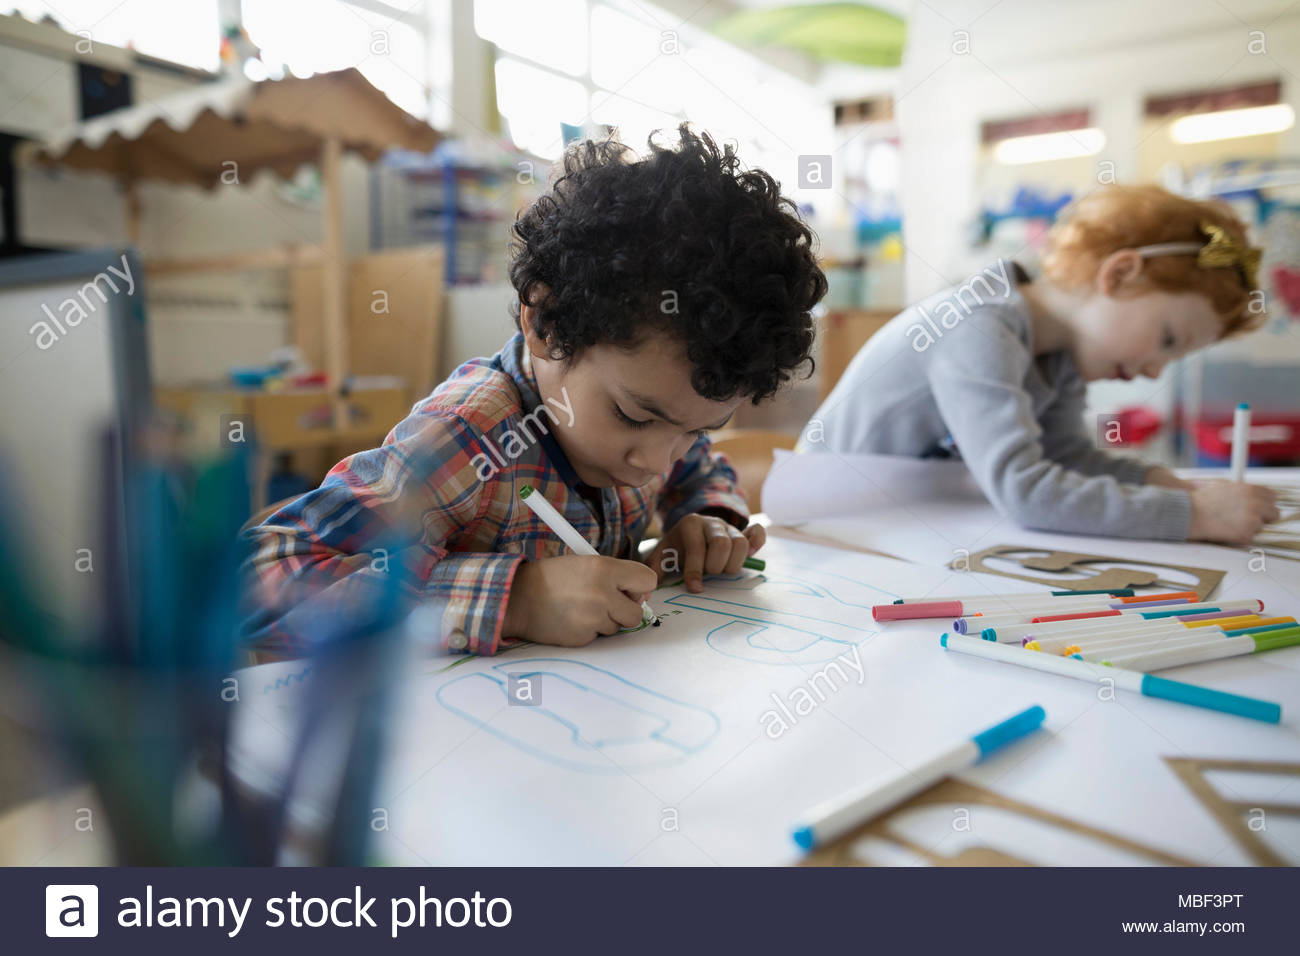 Focused preschool boy drawing letters with marker in classroom - Stock Image